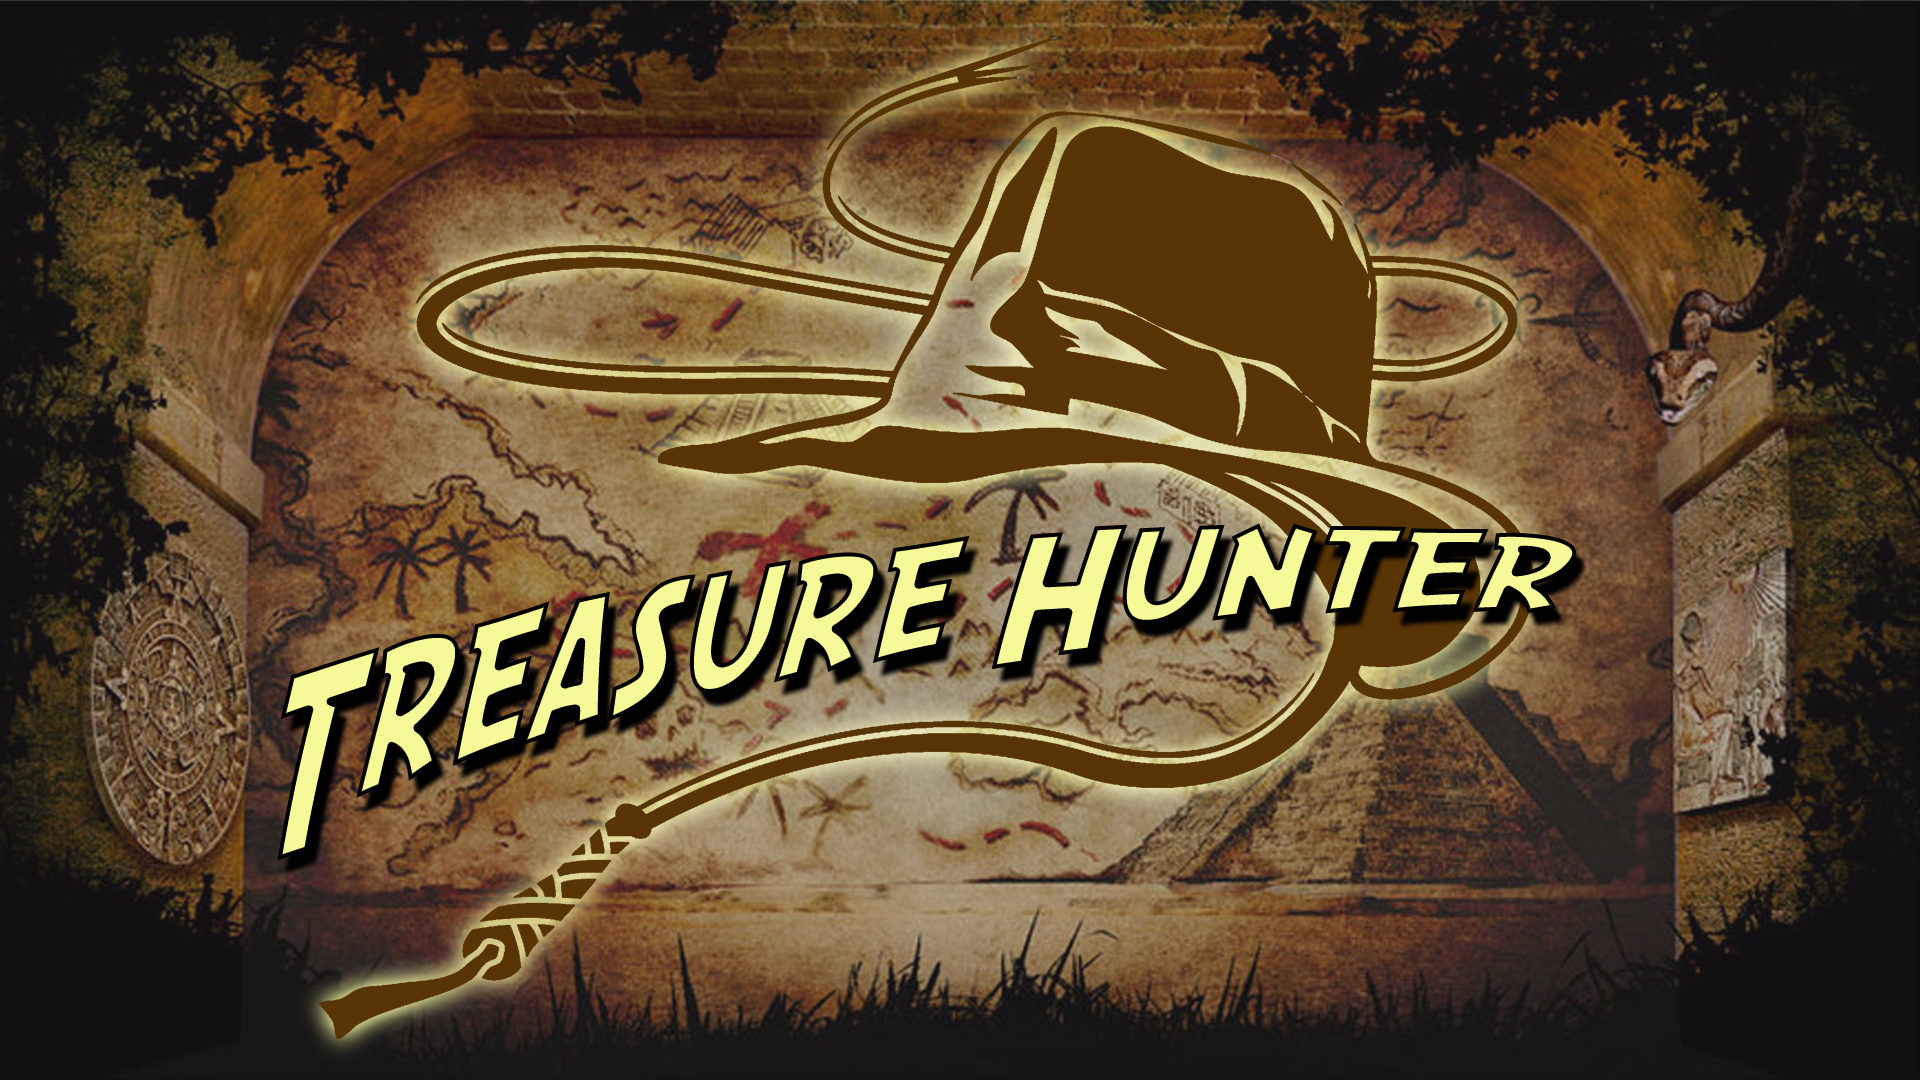 Treasure Hunting - Pictures, posters, news and videos on ...